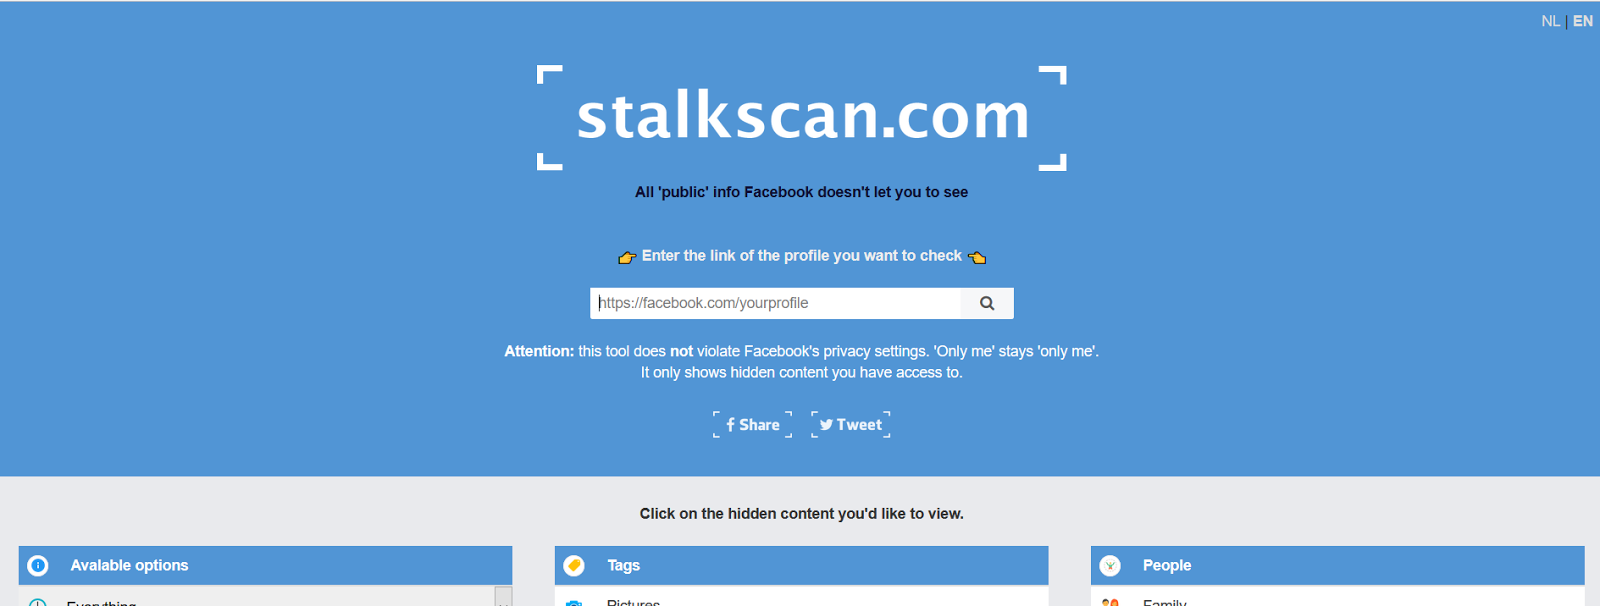 Stalkscan - A Creepy Tool That Exposes All Your Facebook